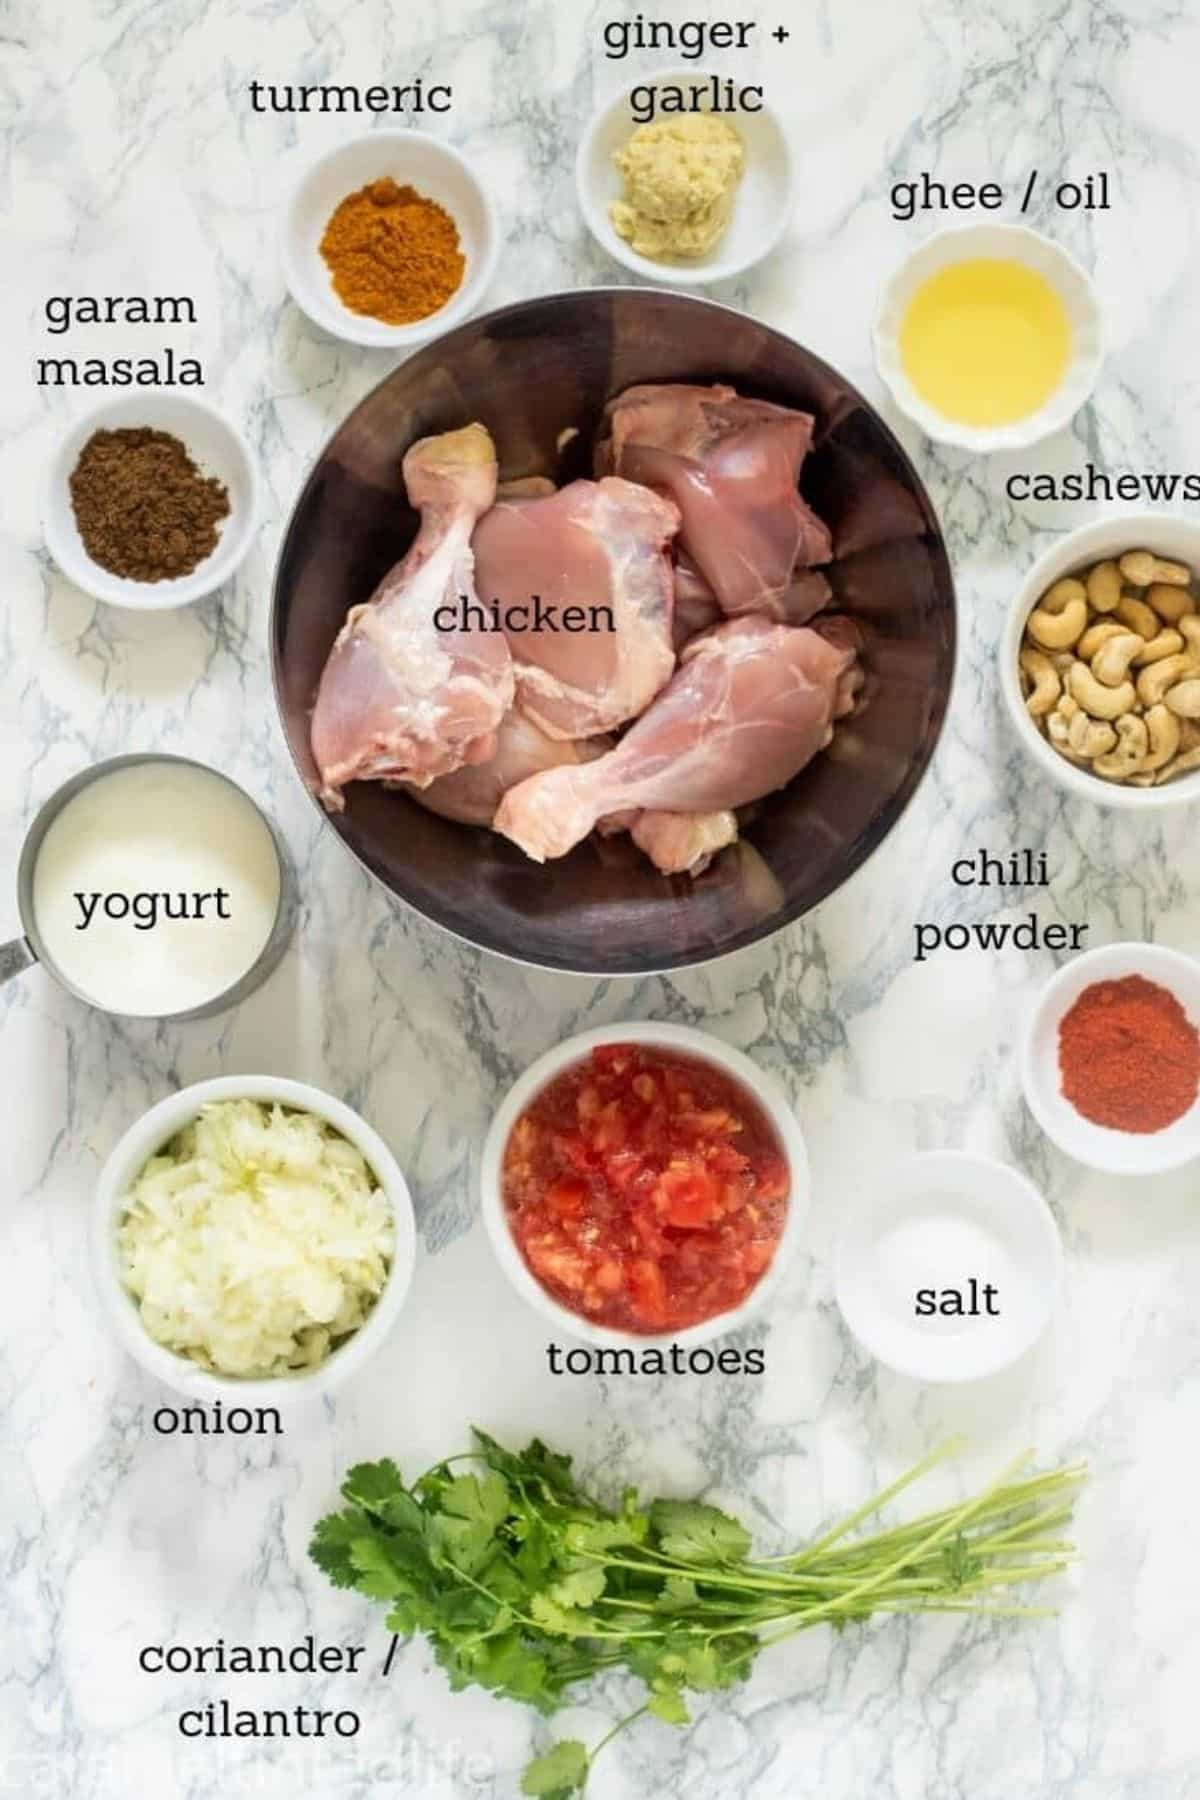 All the ingredients used to make chuîcken curry in the Instant Pot